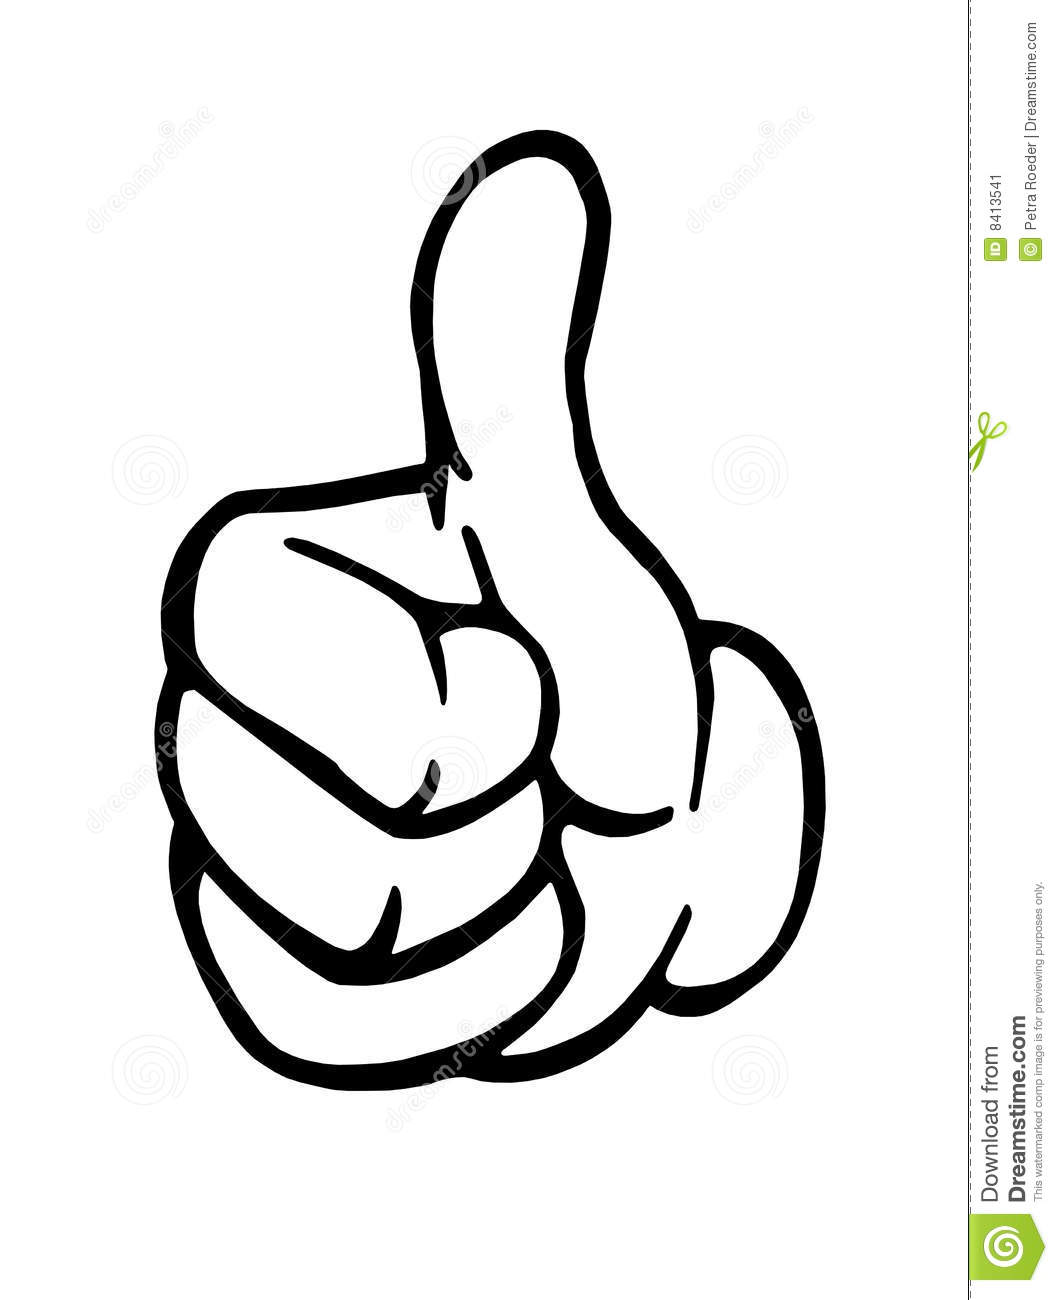 1058x1300 Hand Clipart Thumbs Up